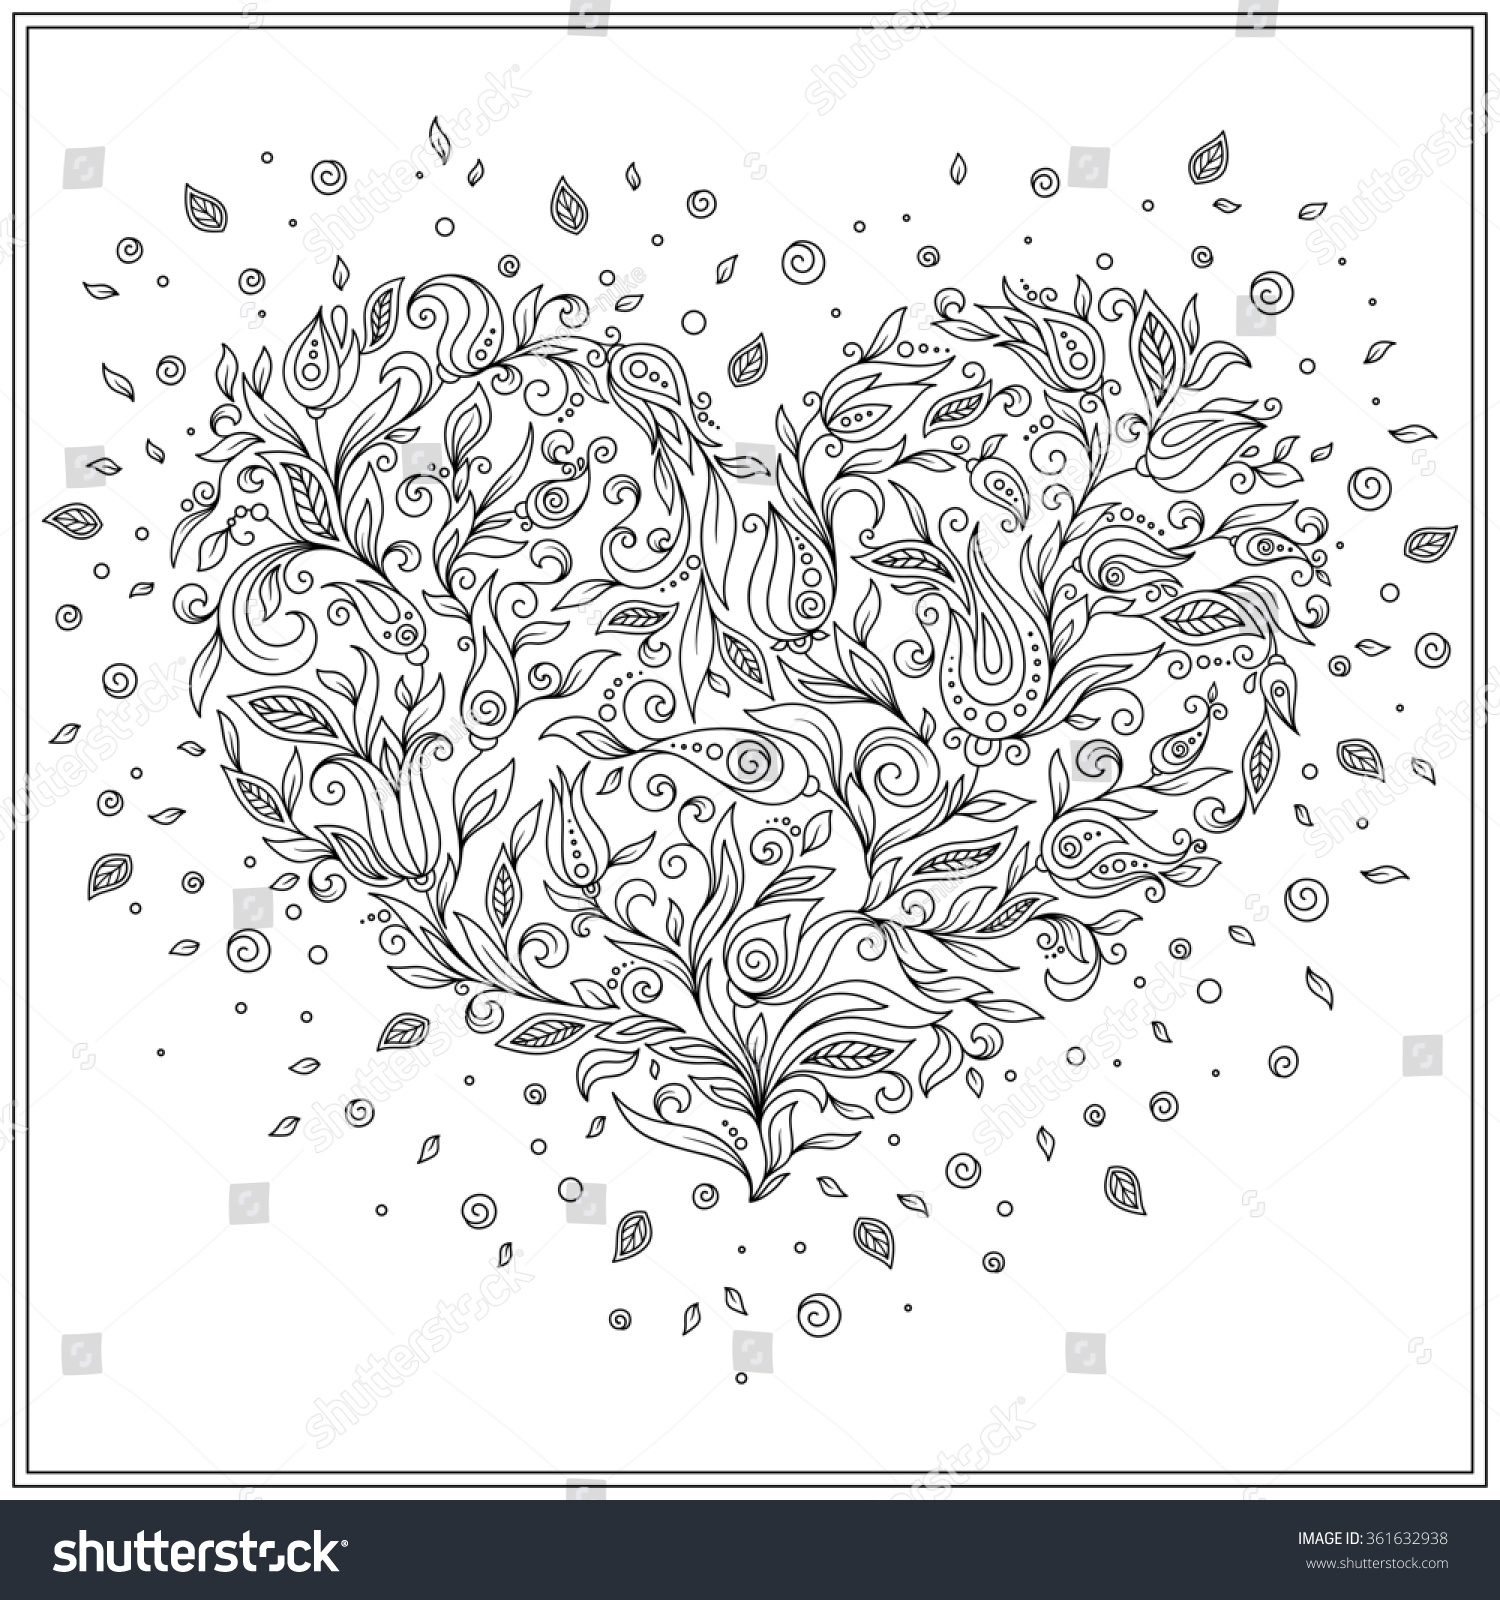 Coloring Pages St Valentine Coloring Pages coloring page flower heart st valentines stock vector 361632938 day with details isolated on white background